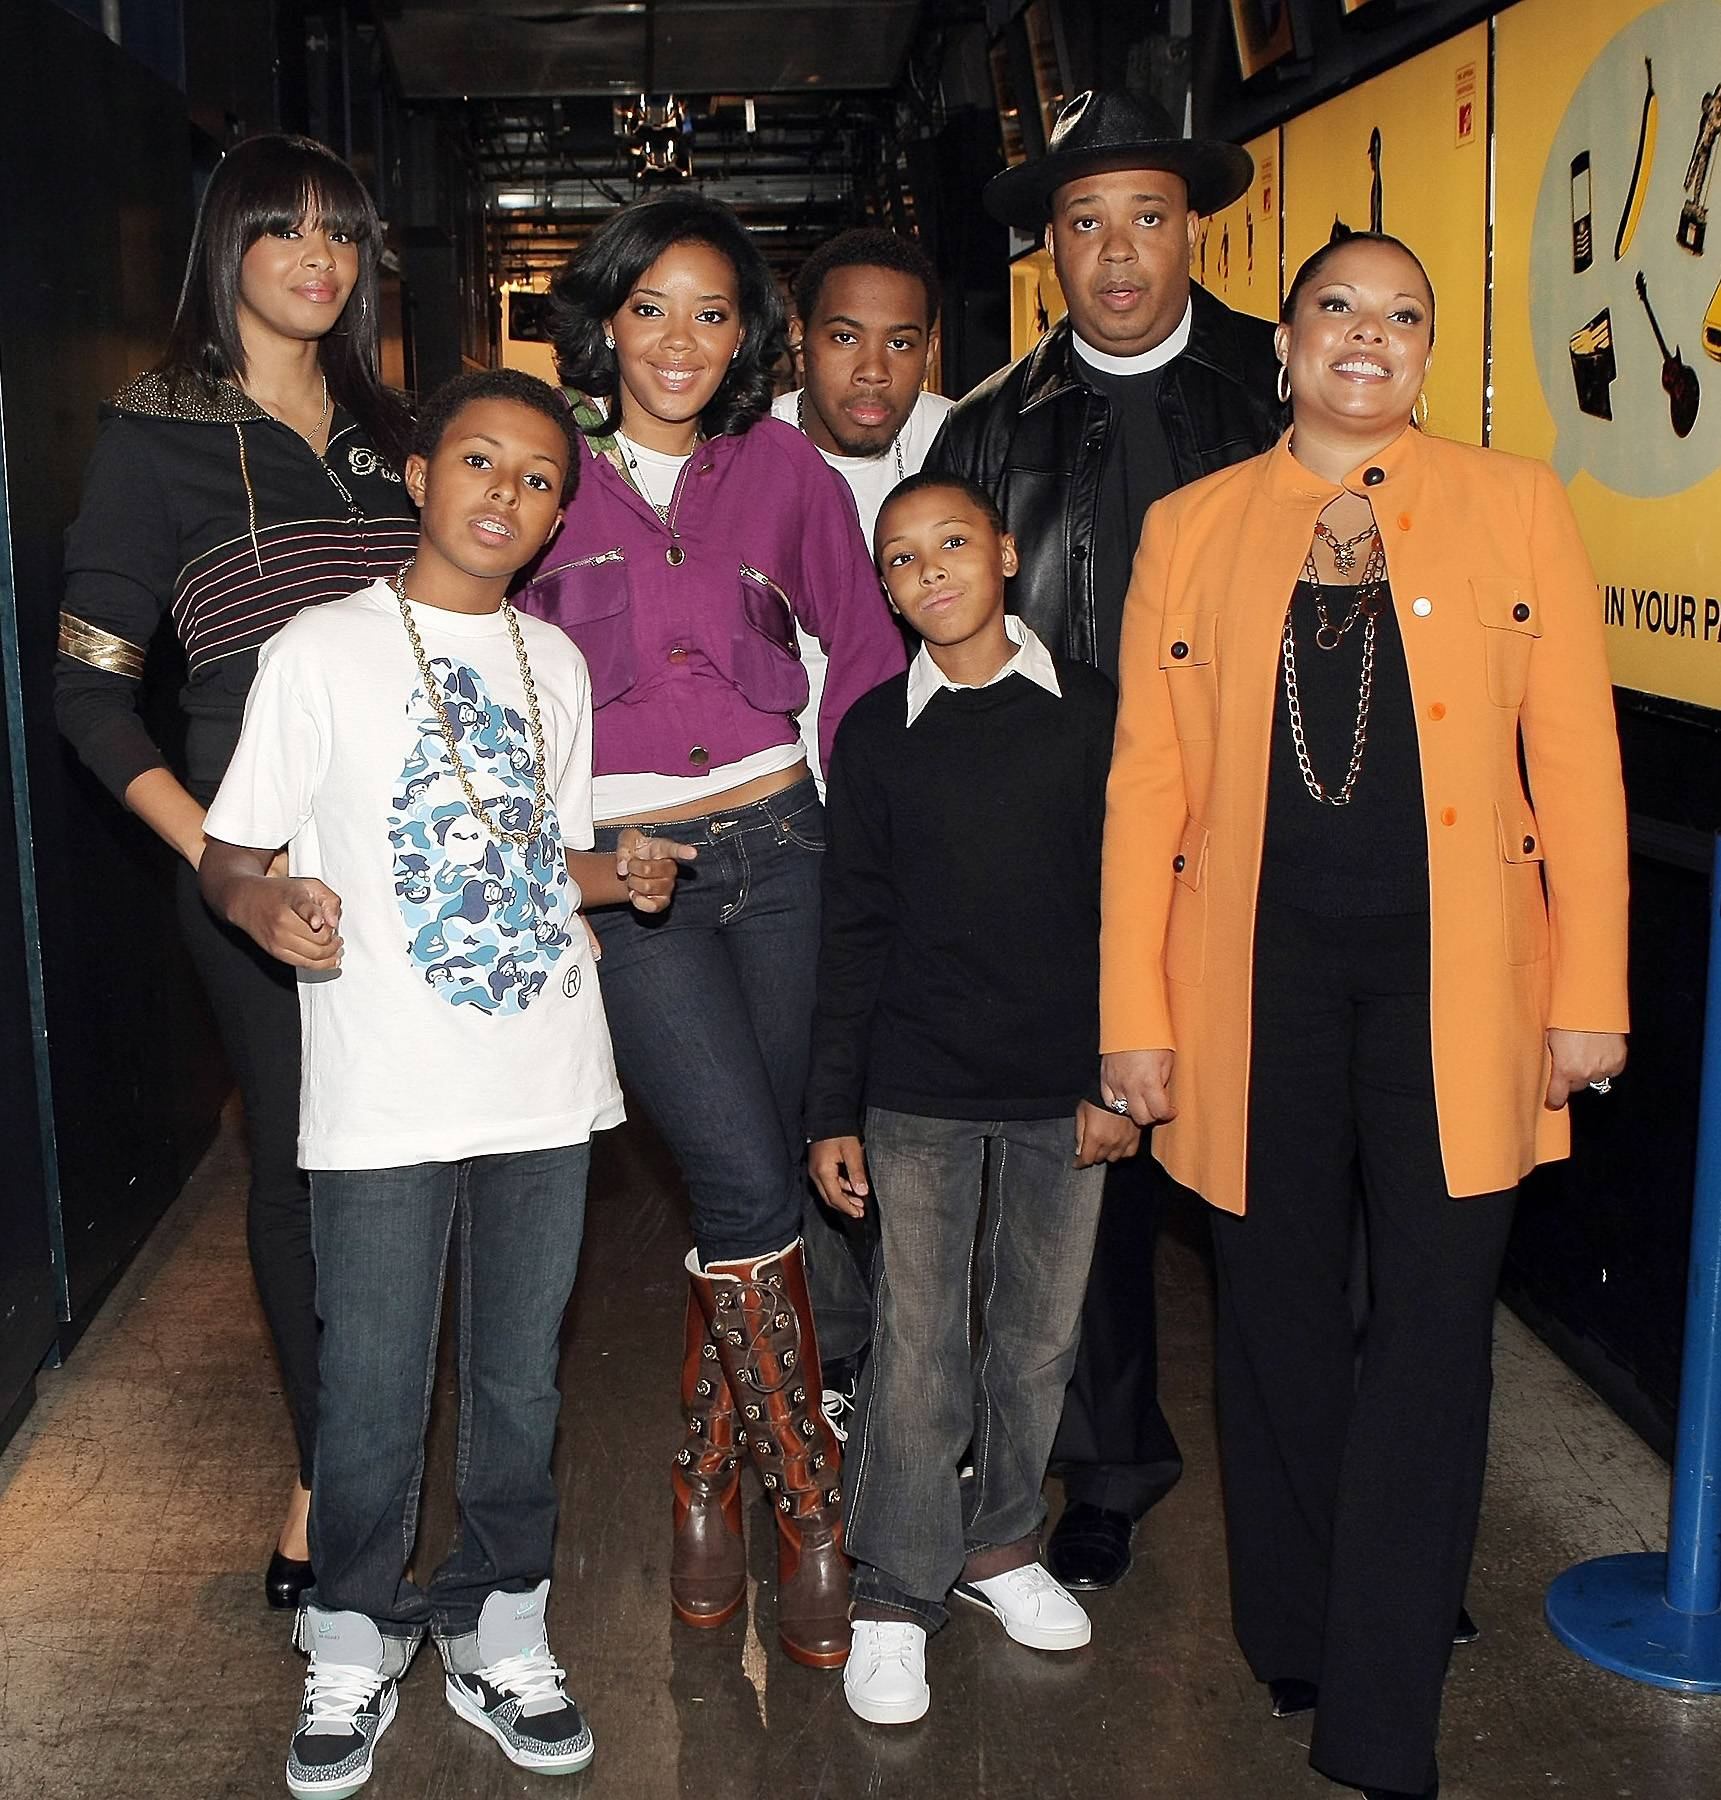 The Simmons Clan  - We know that Joseph Simmons, aka Reverend Run, and Russell Simmons are brothers, but did you know about his famous kids?Vanessa, Angela and Diggy are making waves in the entertainment and fashion industries just like their dear old dad. (Photo: Scott Gries/Getty Images)